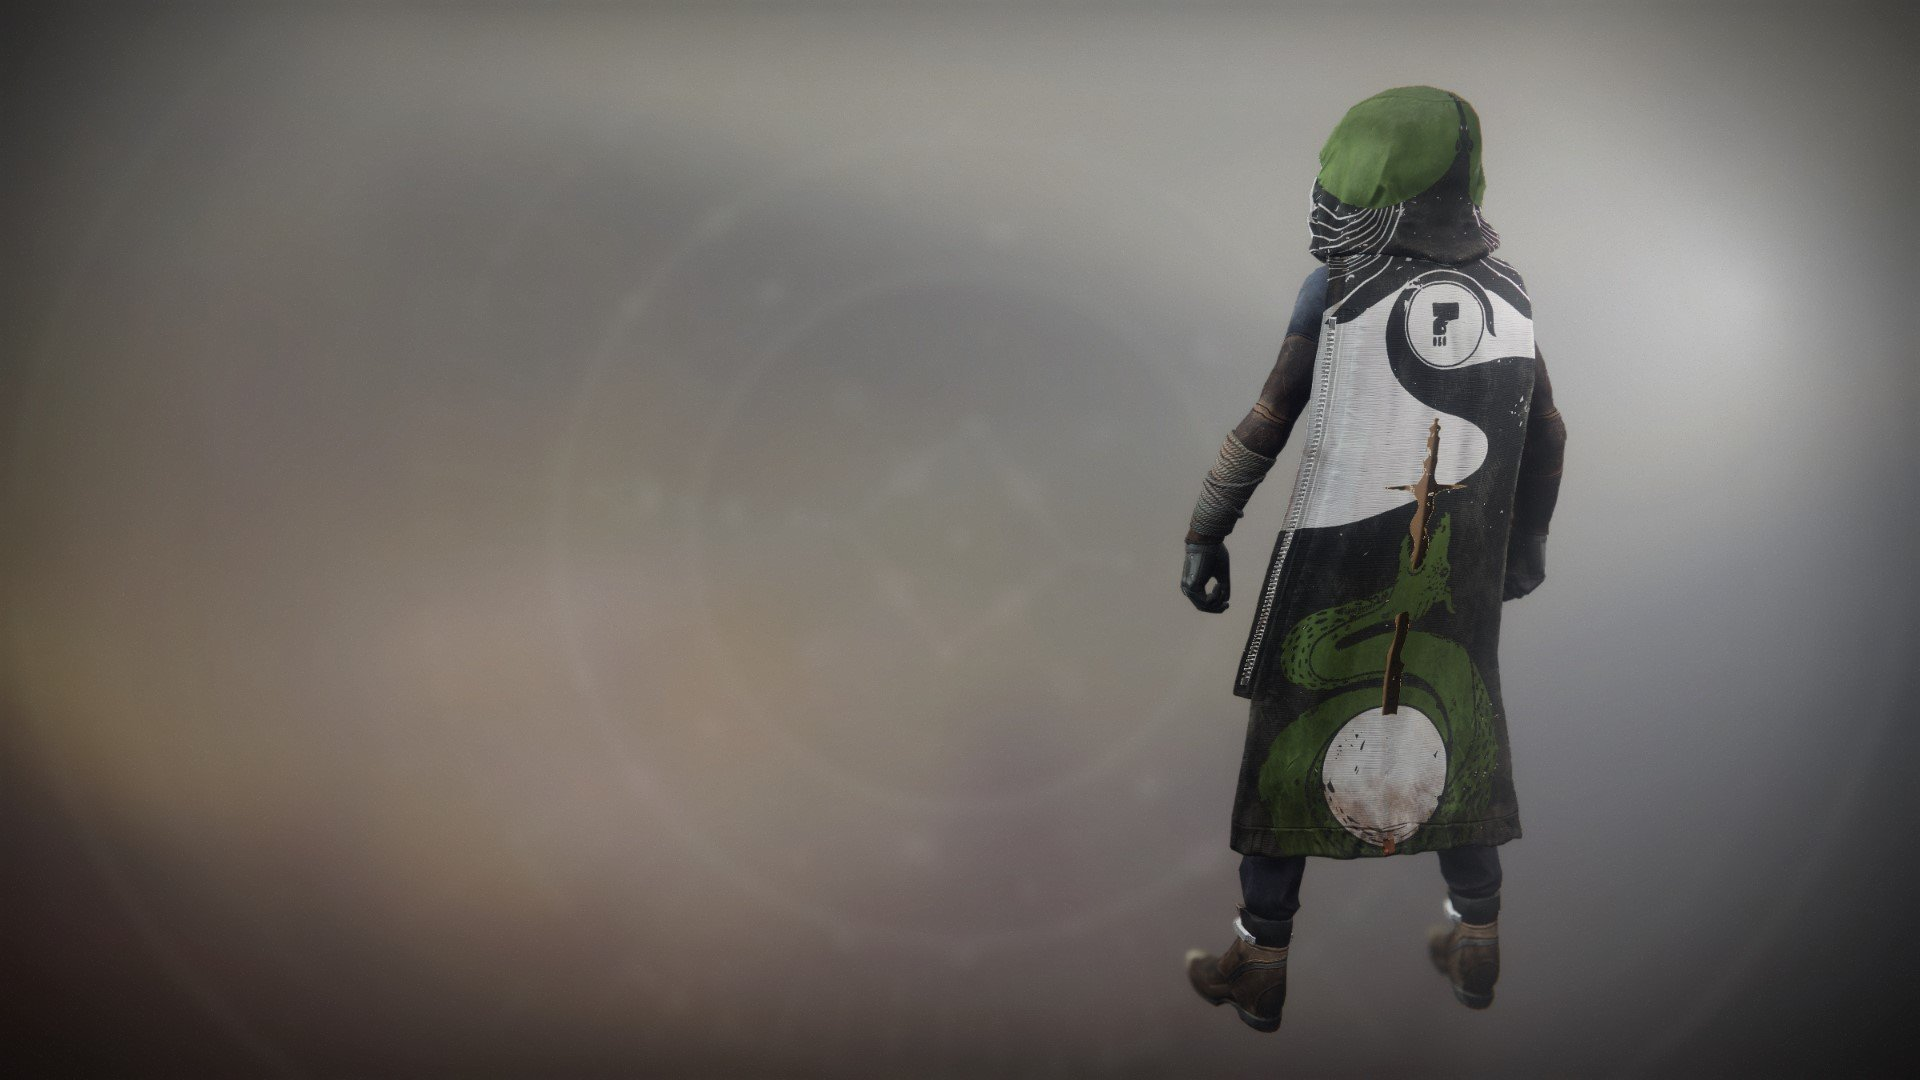 An in-game render of the Cape of Last Departure.